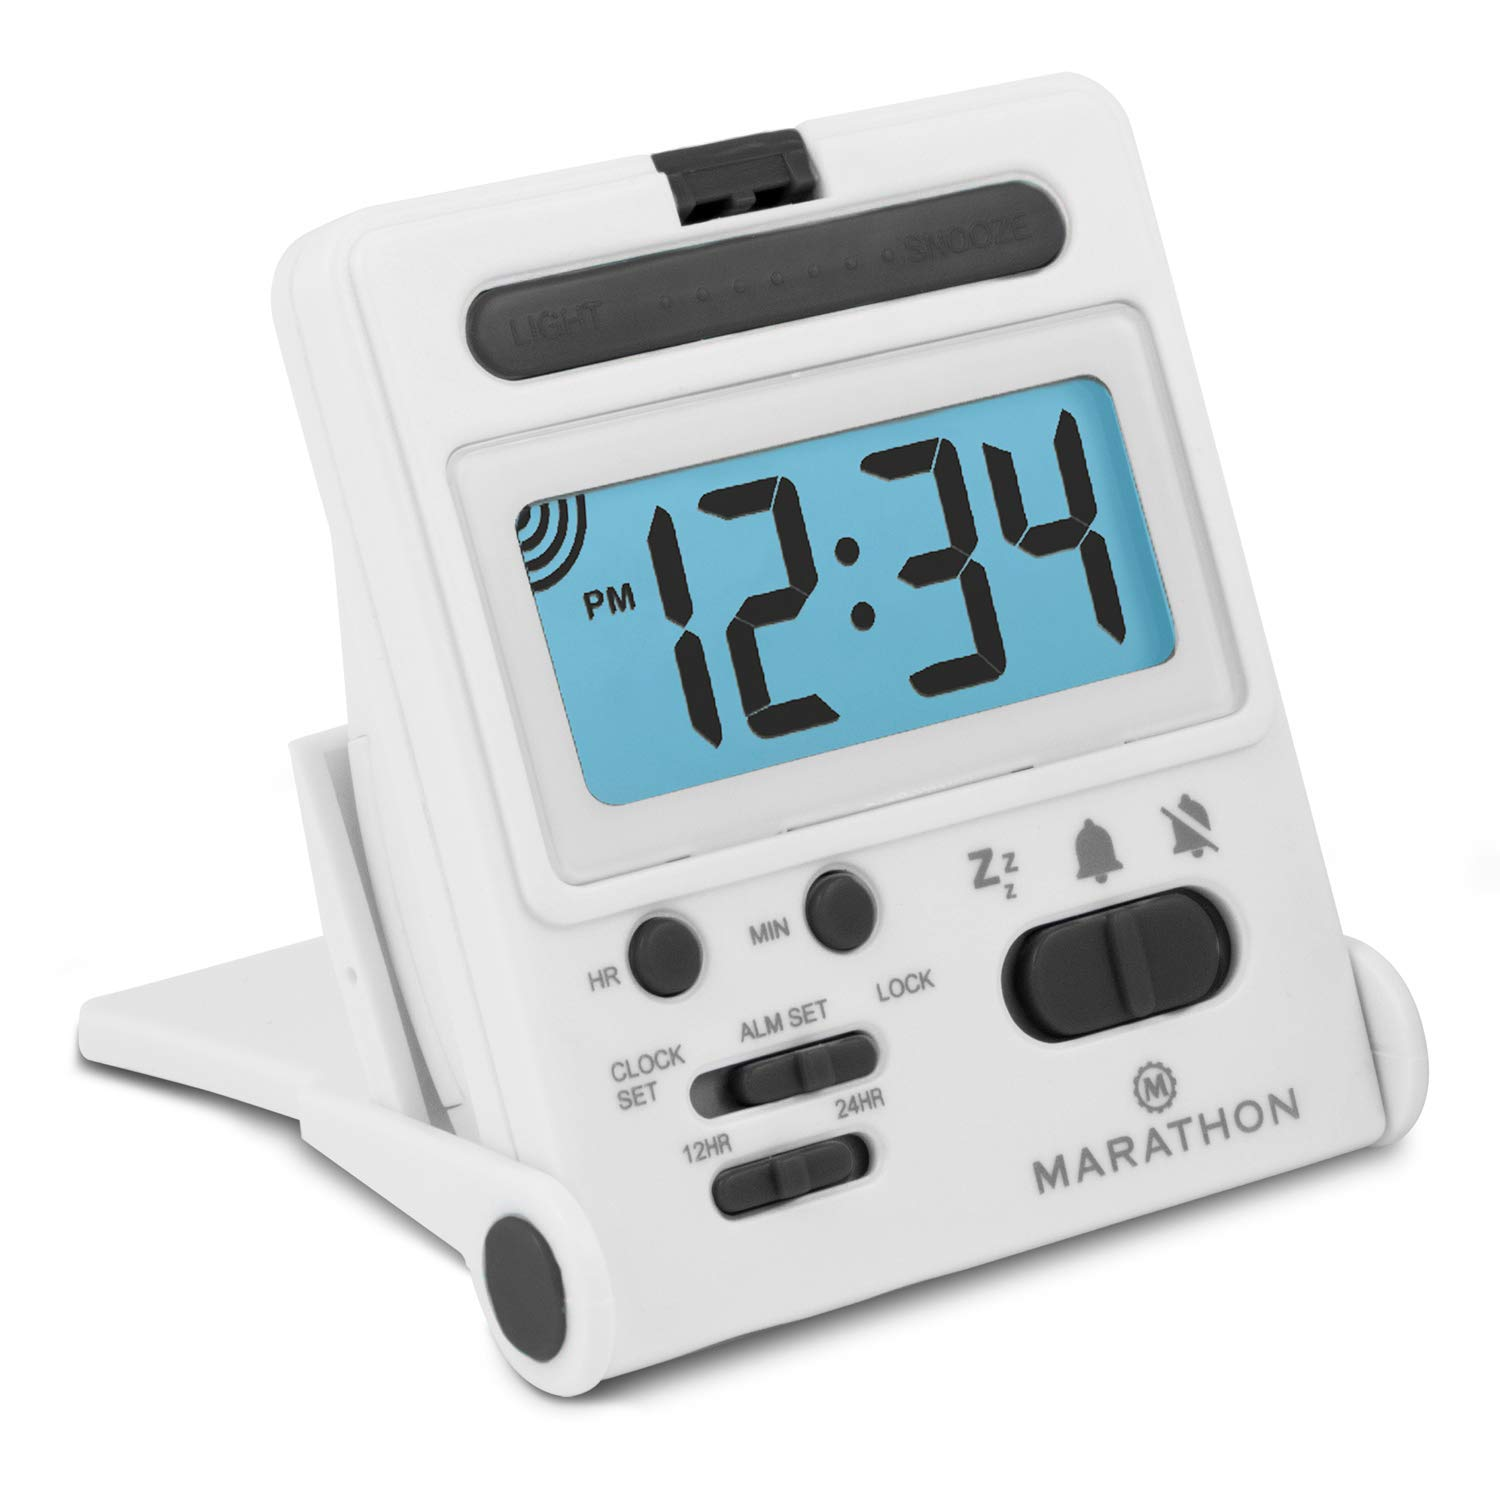 Marathon Basics Simple Travel Alarm Clock with Calendar /& Temperature Titanium Easy to use - Battery Included Easy to Set